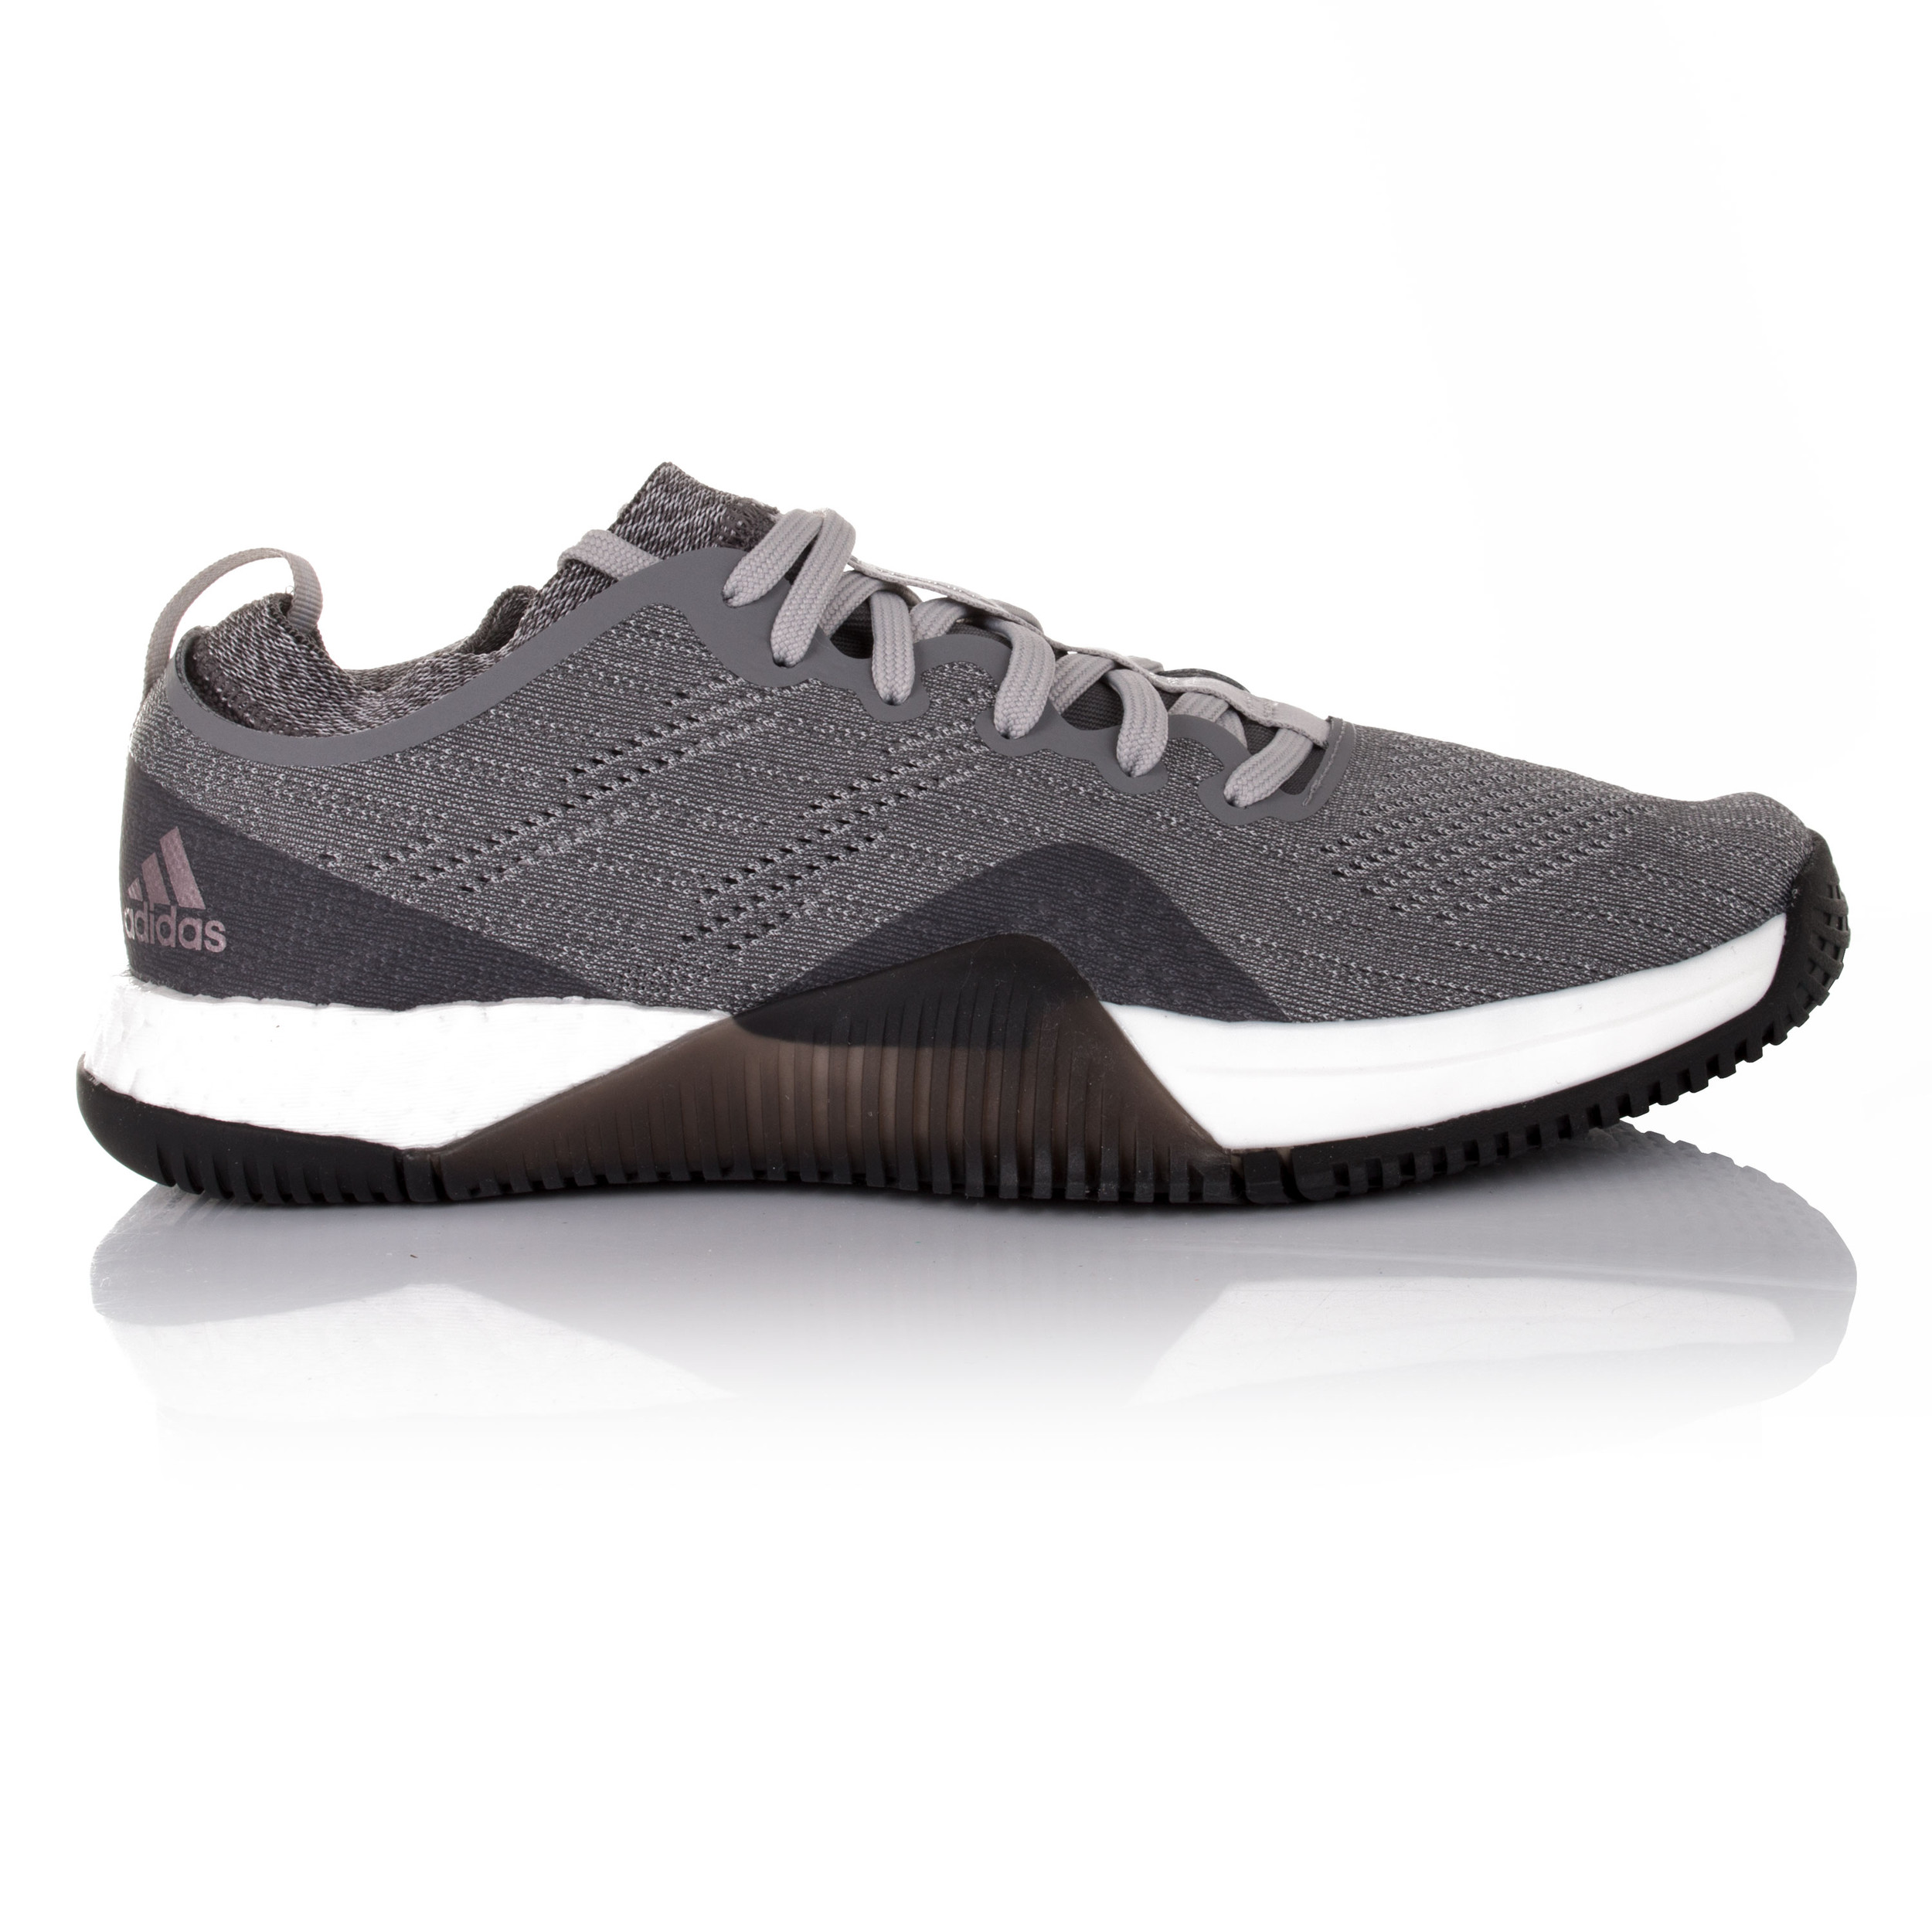 pretty nice b7b8e 3c2a1 Details about Adidas Crazy Train Elite Womens Grey Training Gym Sports Shoes  Trainers